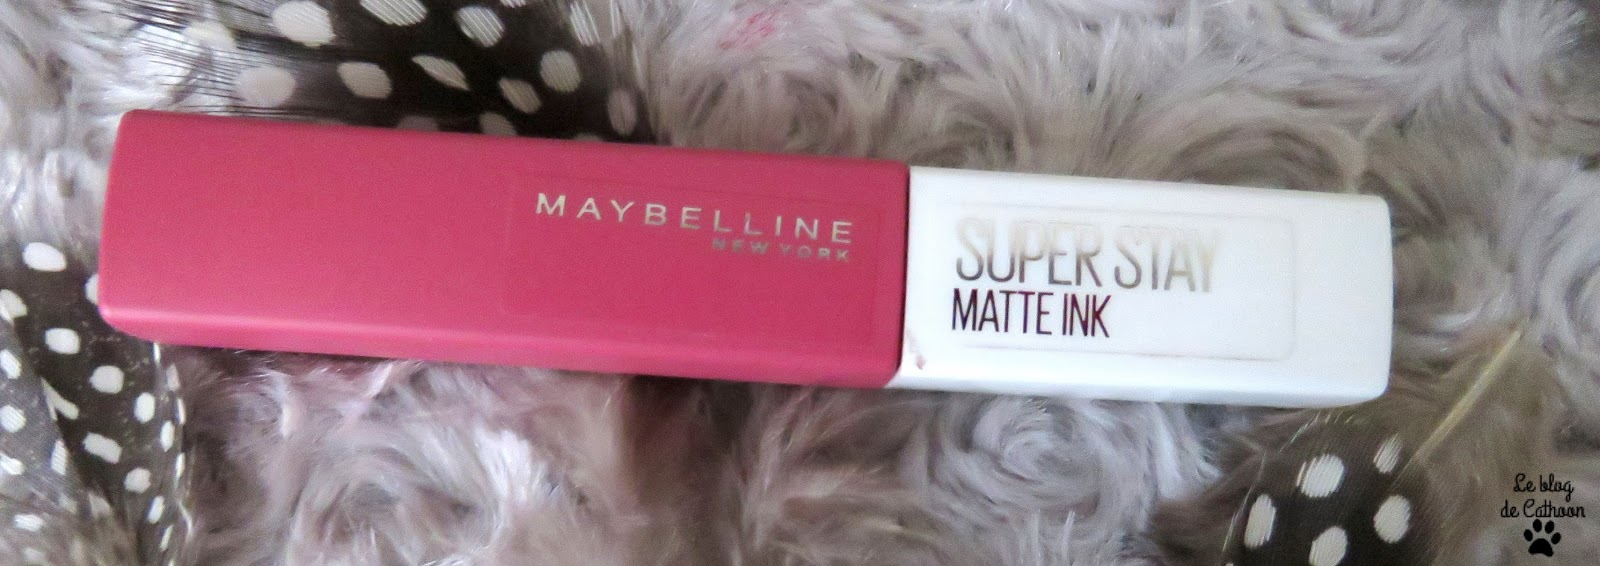 15 Lover - Super Stay Matte Ink - Maybelline